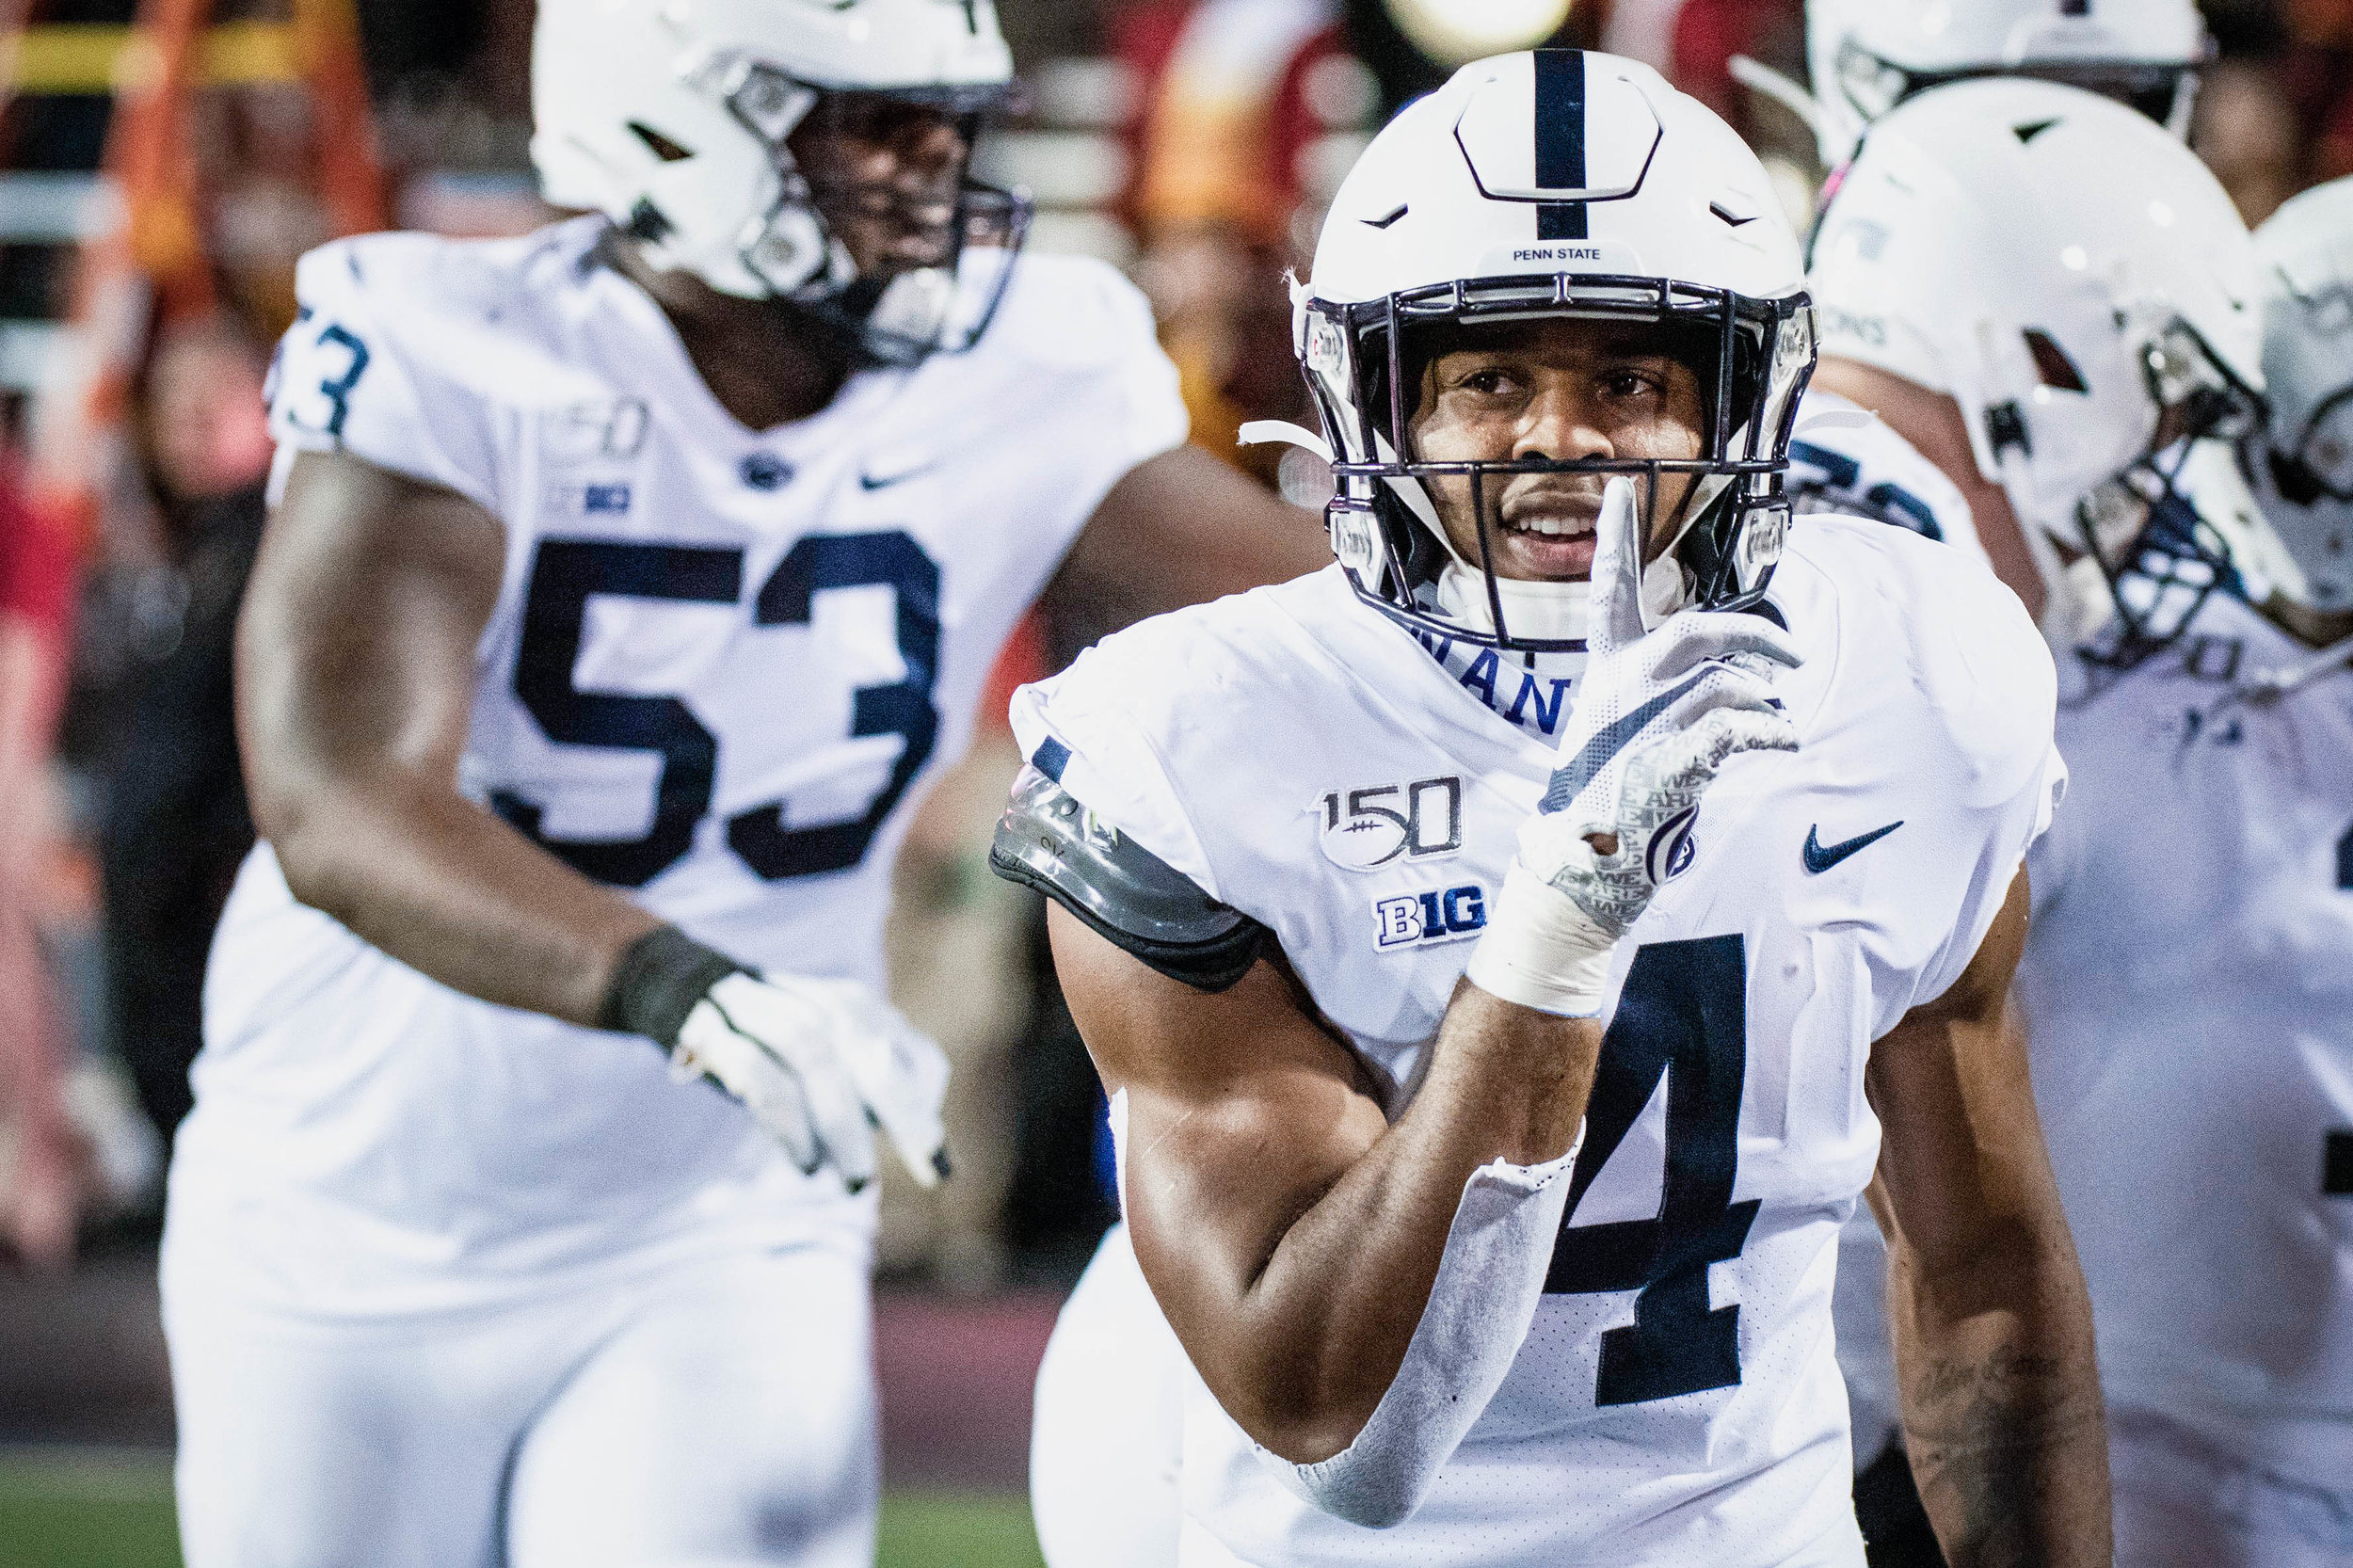 Penn State Nittany Lions running back Journey Brown (4) celebrates during the game against Maryland on Friday, Sept. 27, 2019 at Capital One Field in College Park, Md. The Nittany Lion's defeated the Terrapins 59-0. | Photo by: Noah Riffe